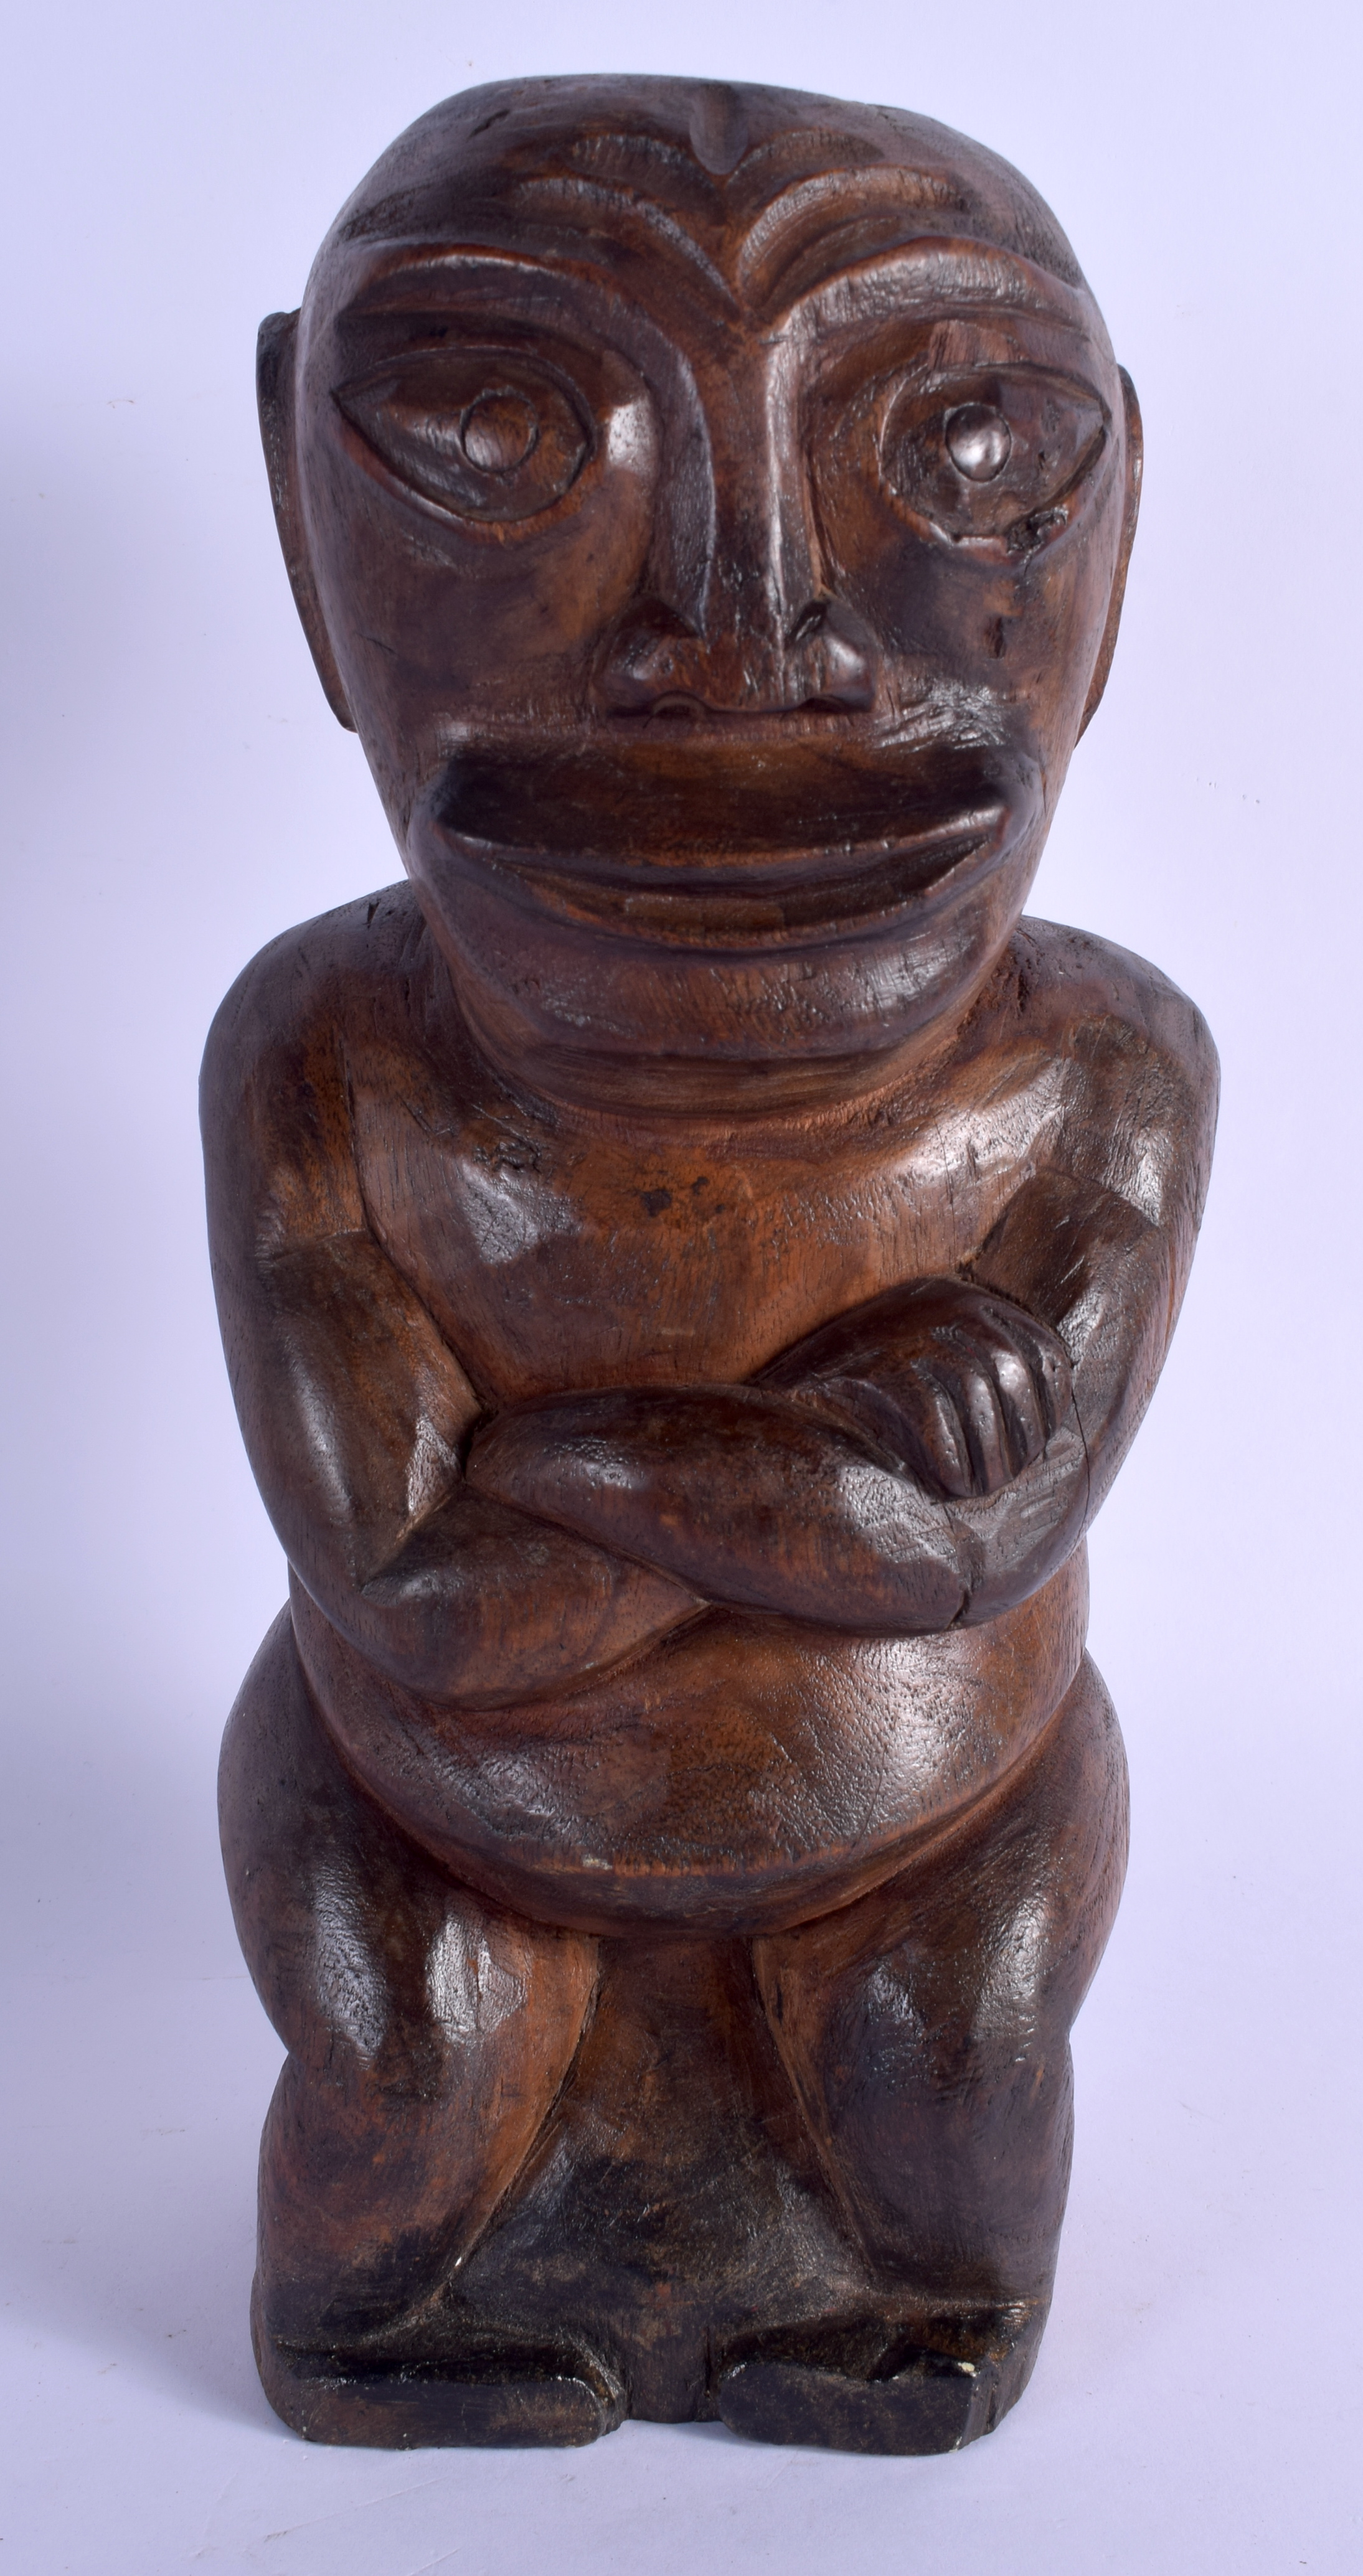 A SOUTH PACIFIC CARVED TRIBAL SEATED FIGURE possibly from Tahiti or Marquesas Islands. 33 cm high.